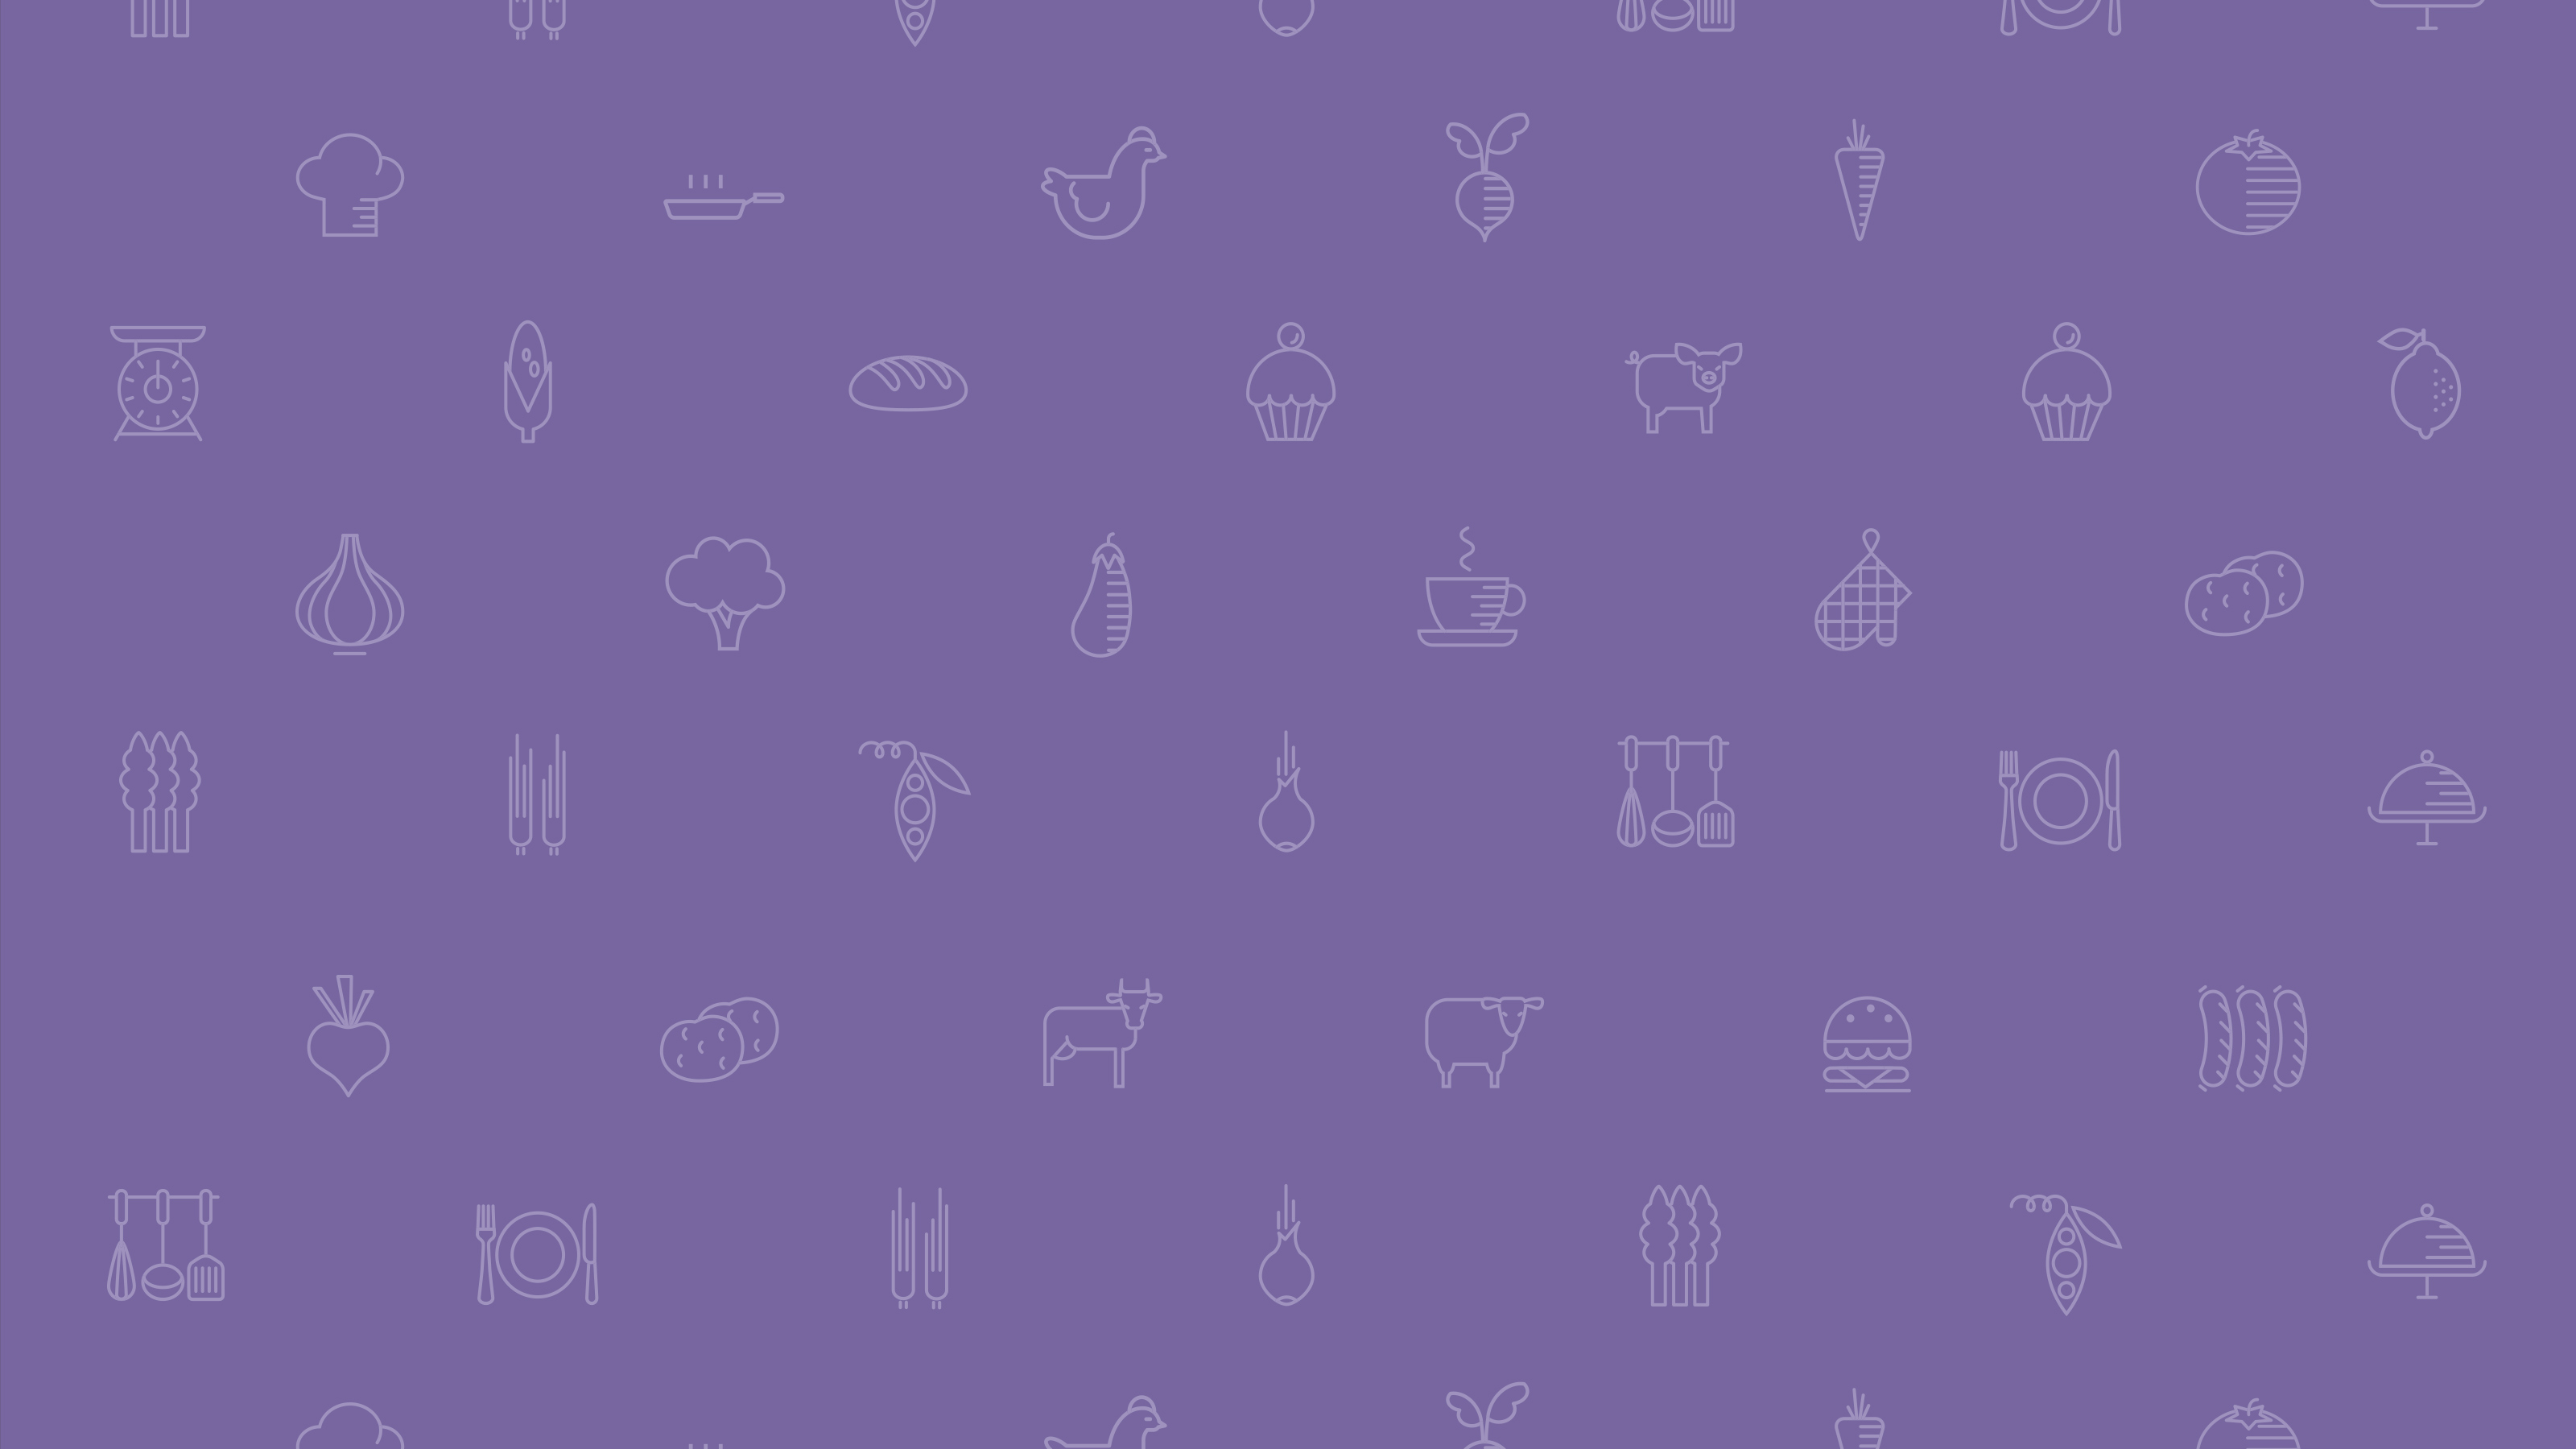 Harrison Brand icons pattern